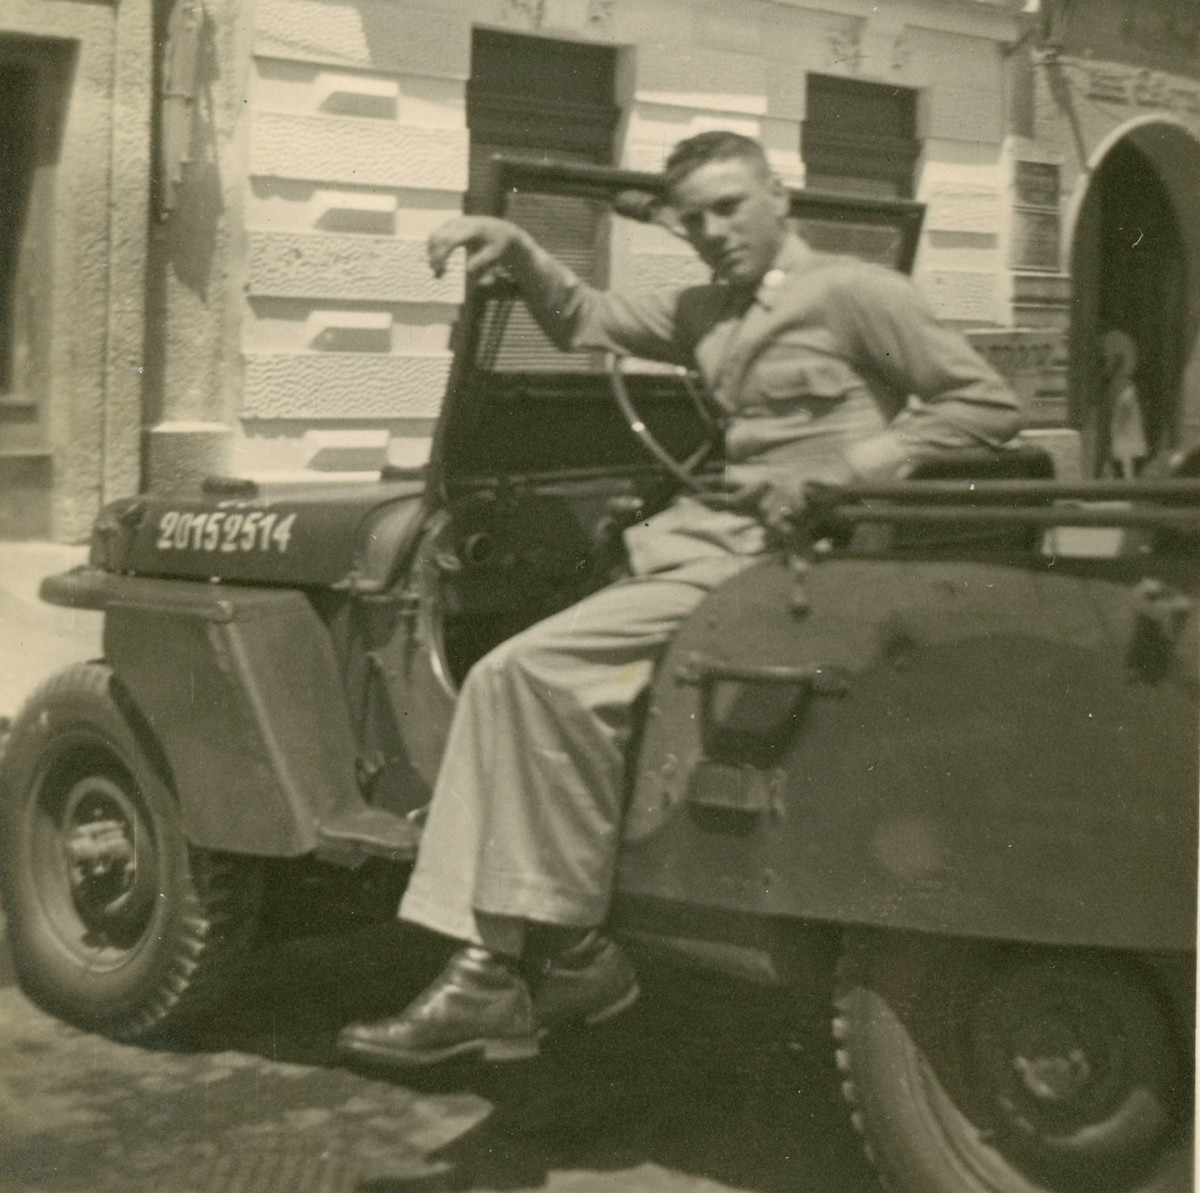 """Doin' it, """"Berlin-Style."""" Following the end of hostilities, American GIs turned to hot-rodding surplus Jeeps to pass their time. So many modified GPWs and MBs rolled the streets of the former Nazi capitol, that they took on a name of their own: """"Berlin hot rods."""""""